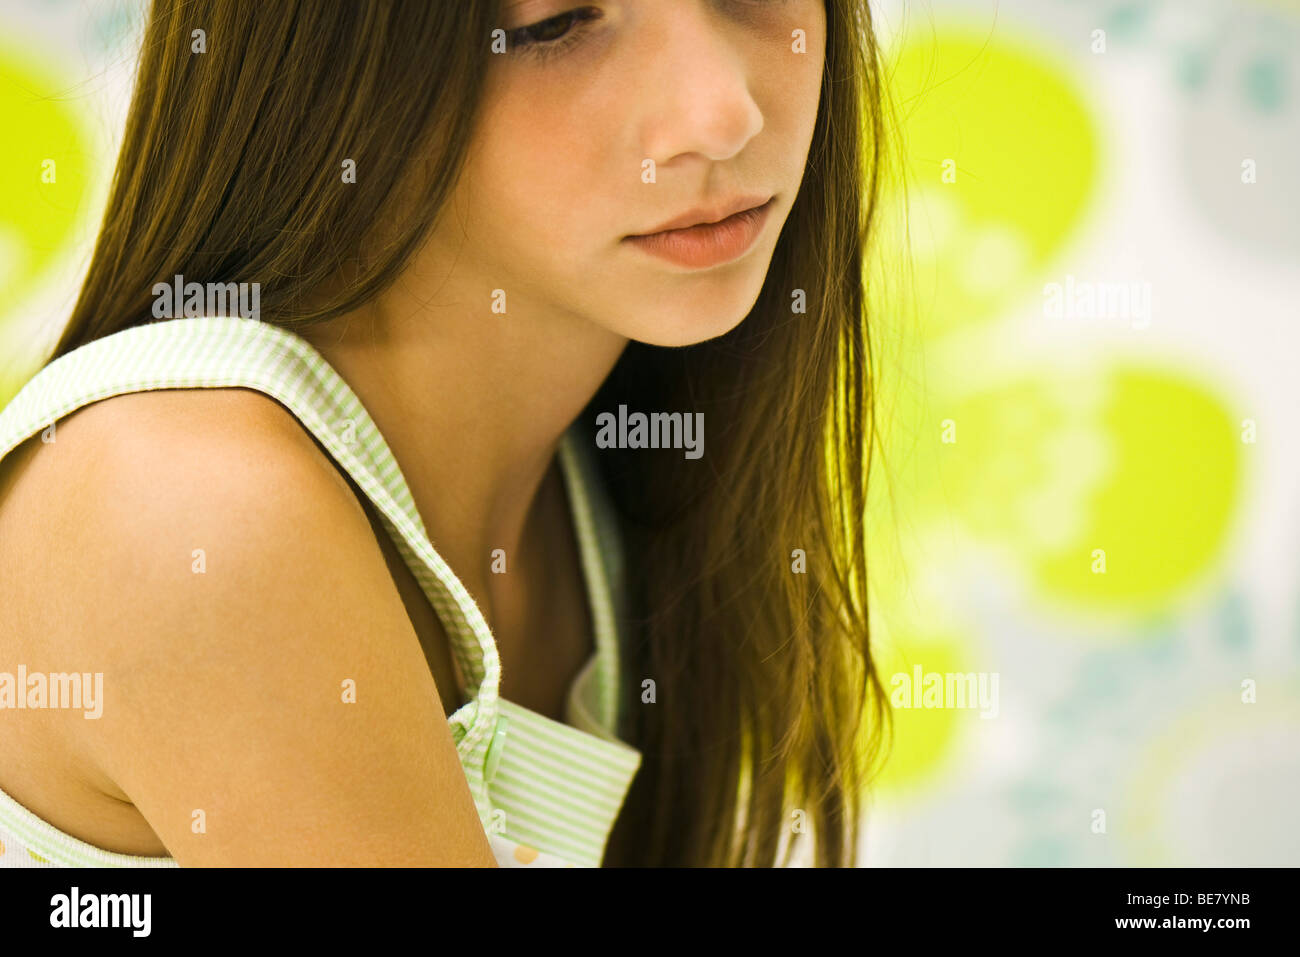 Girl contemplatively looking down - Stock Image